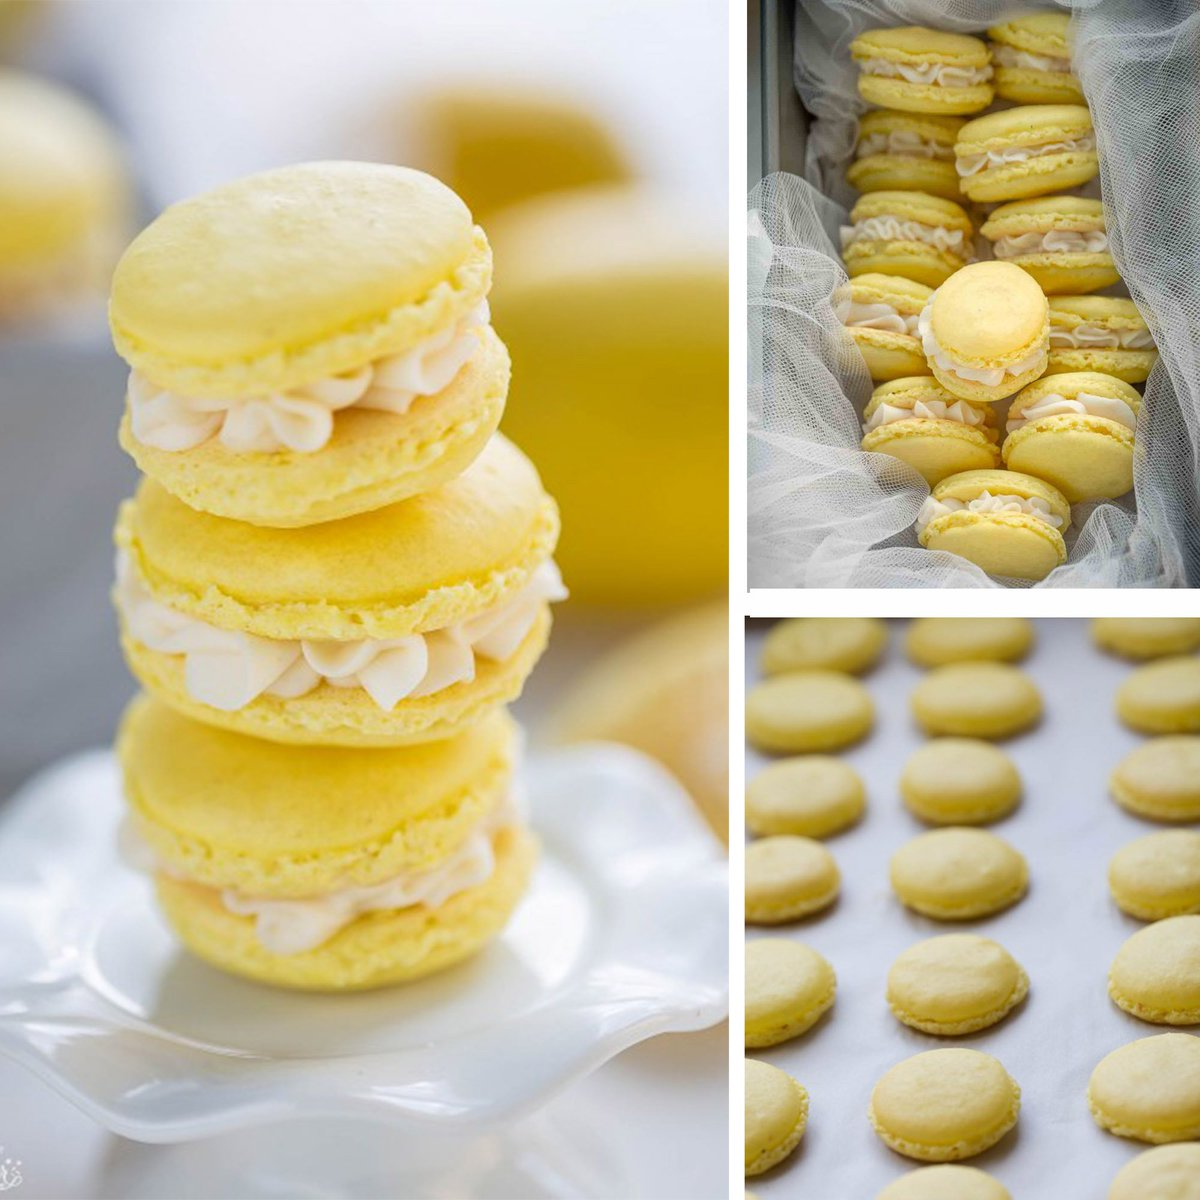 Lemon Macarons #MacaronDay #firstdayofspring https://t.co/Hy1QiNPcCg h...